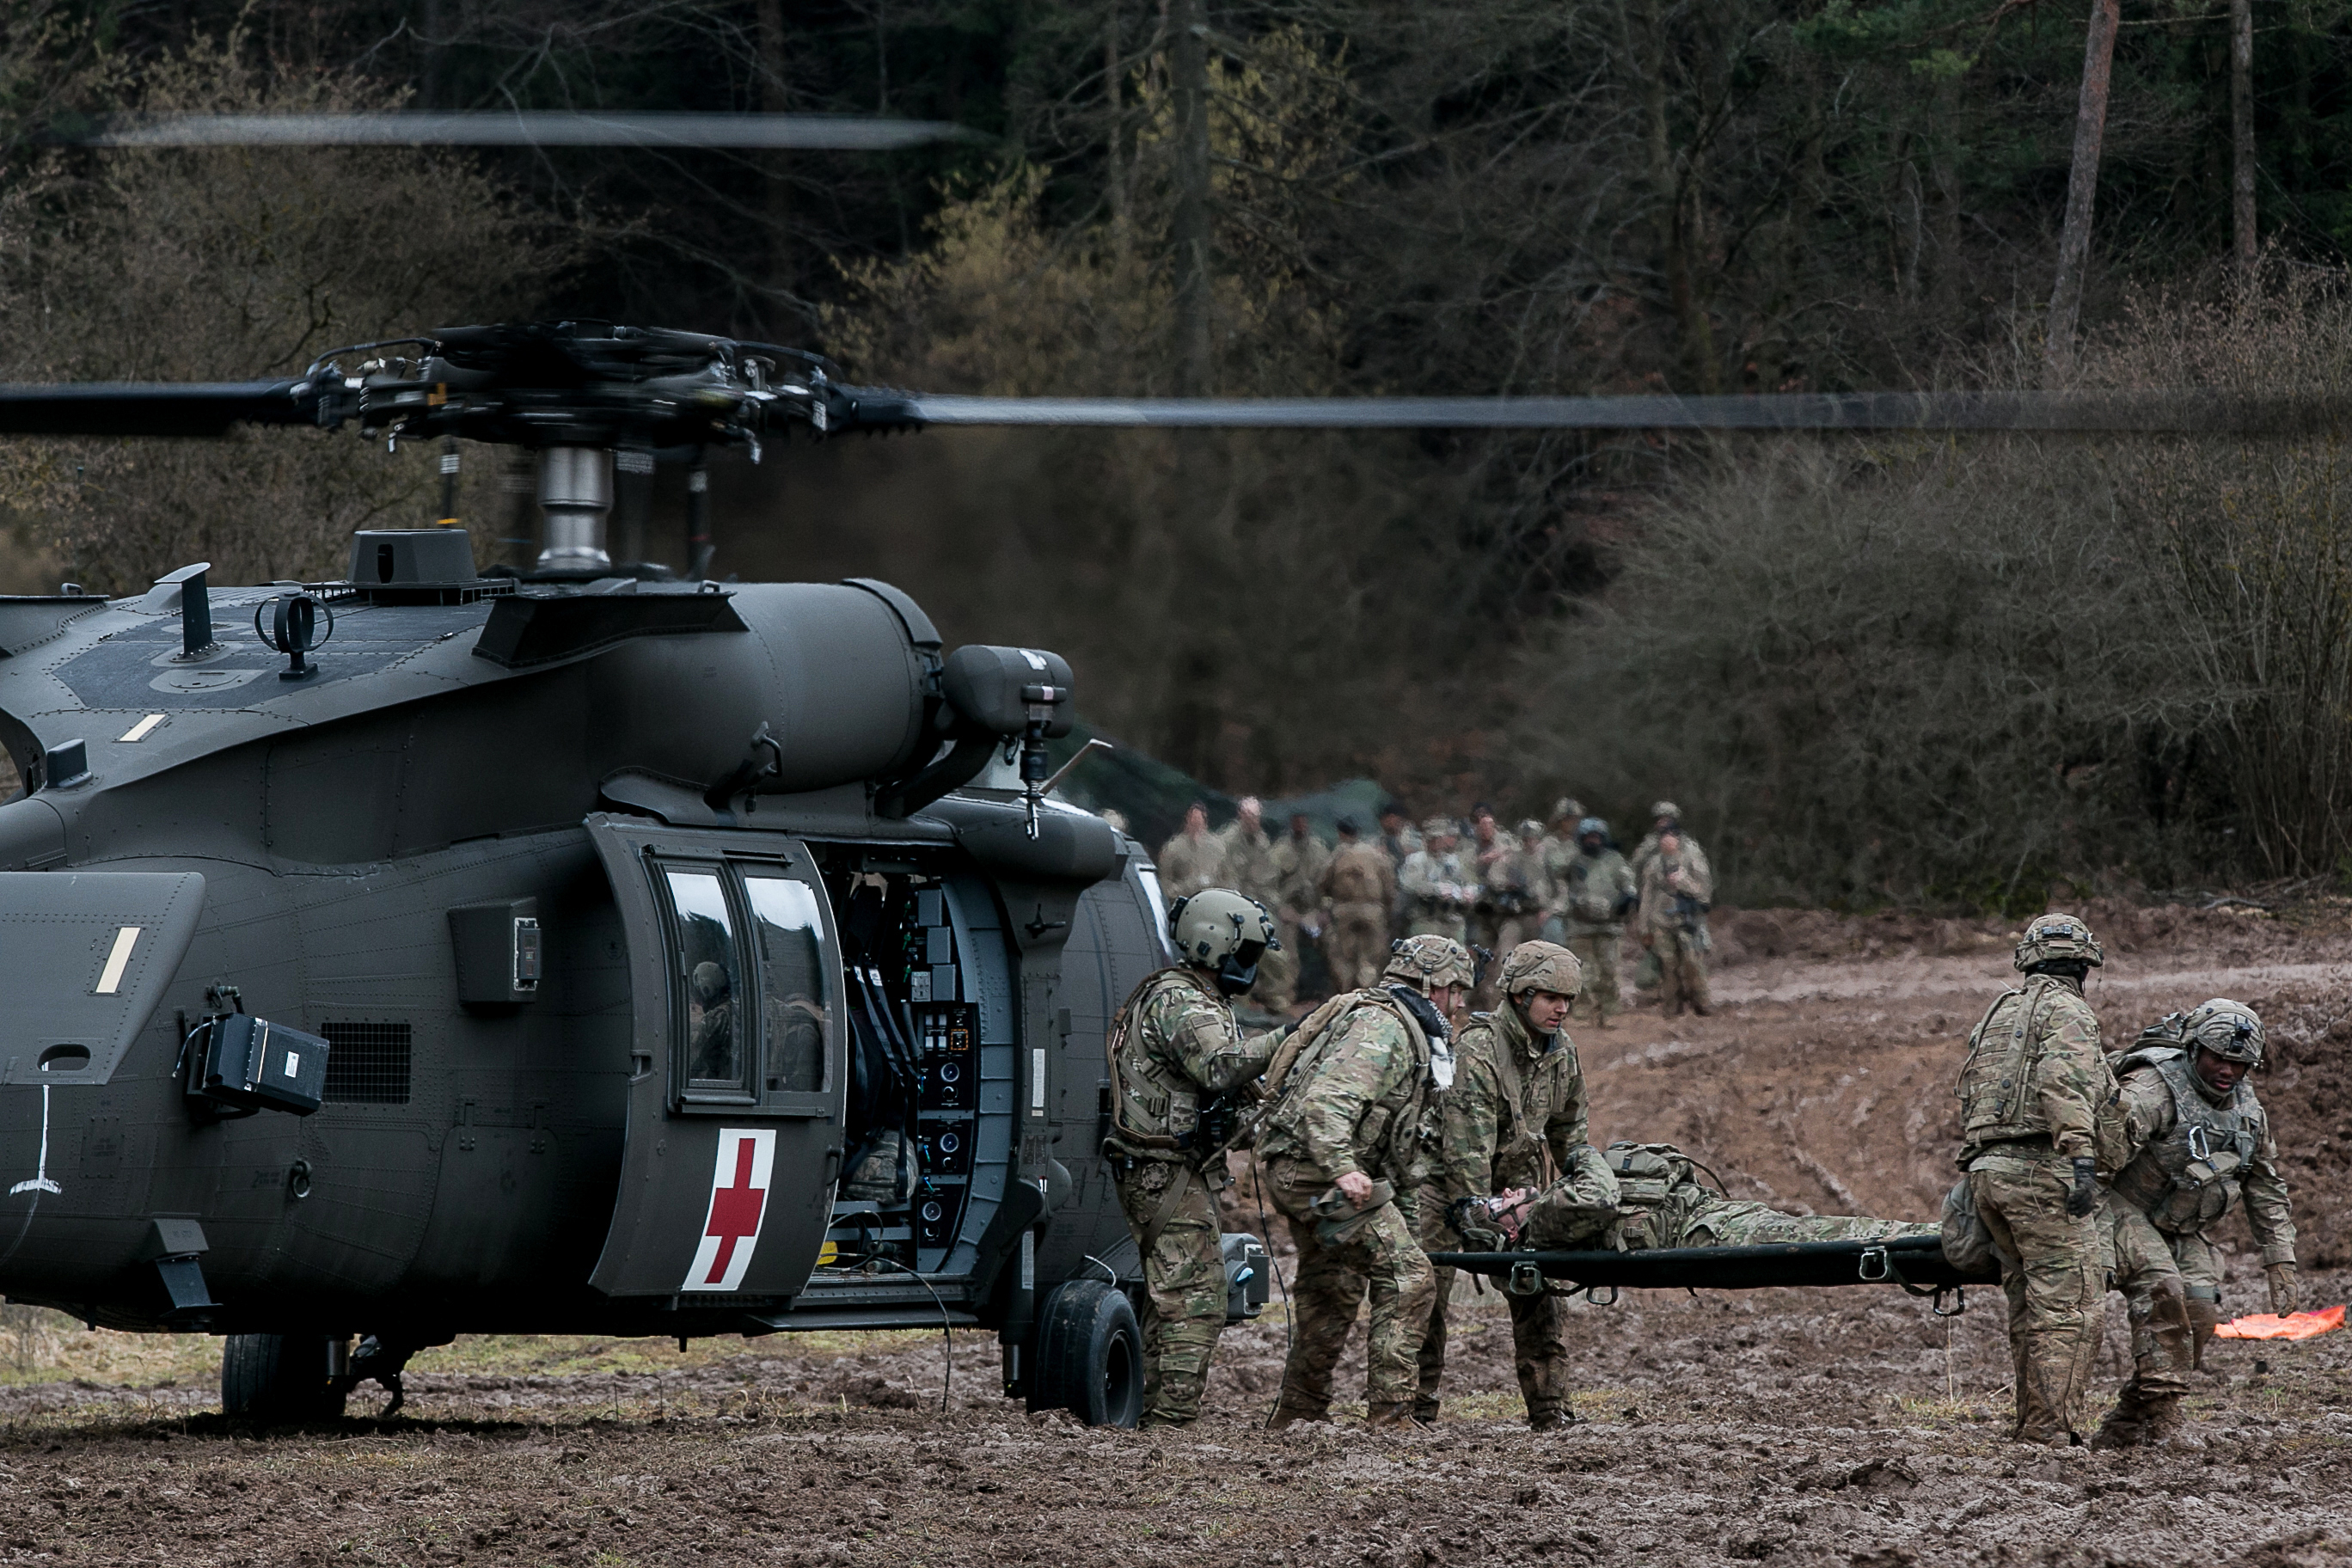 Medics from 557th Medical Company, 421st Medical Battalion, 30th Medical Brigade, Baumholder, Germany, conduct rapid medical evacuation training Jan. 29, 2018 during Allied Spirit VIII at Hohenfels Training Area, Germany. Roughly 4,100 troops from 10 nations are participating in Allied Spirit VIII, a multinational training exercise designed to test participants' readiness and capabilities. (U.S. Army photo by Spc. Dustin D. Biven / 22nd Mobile Public Affairs Detachment)